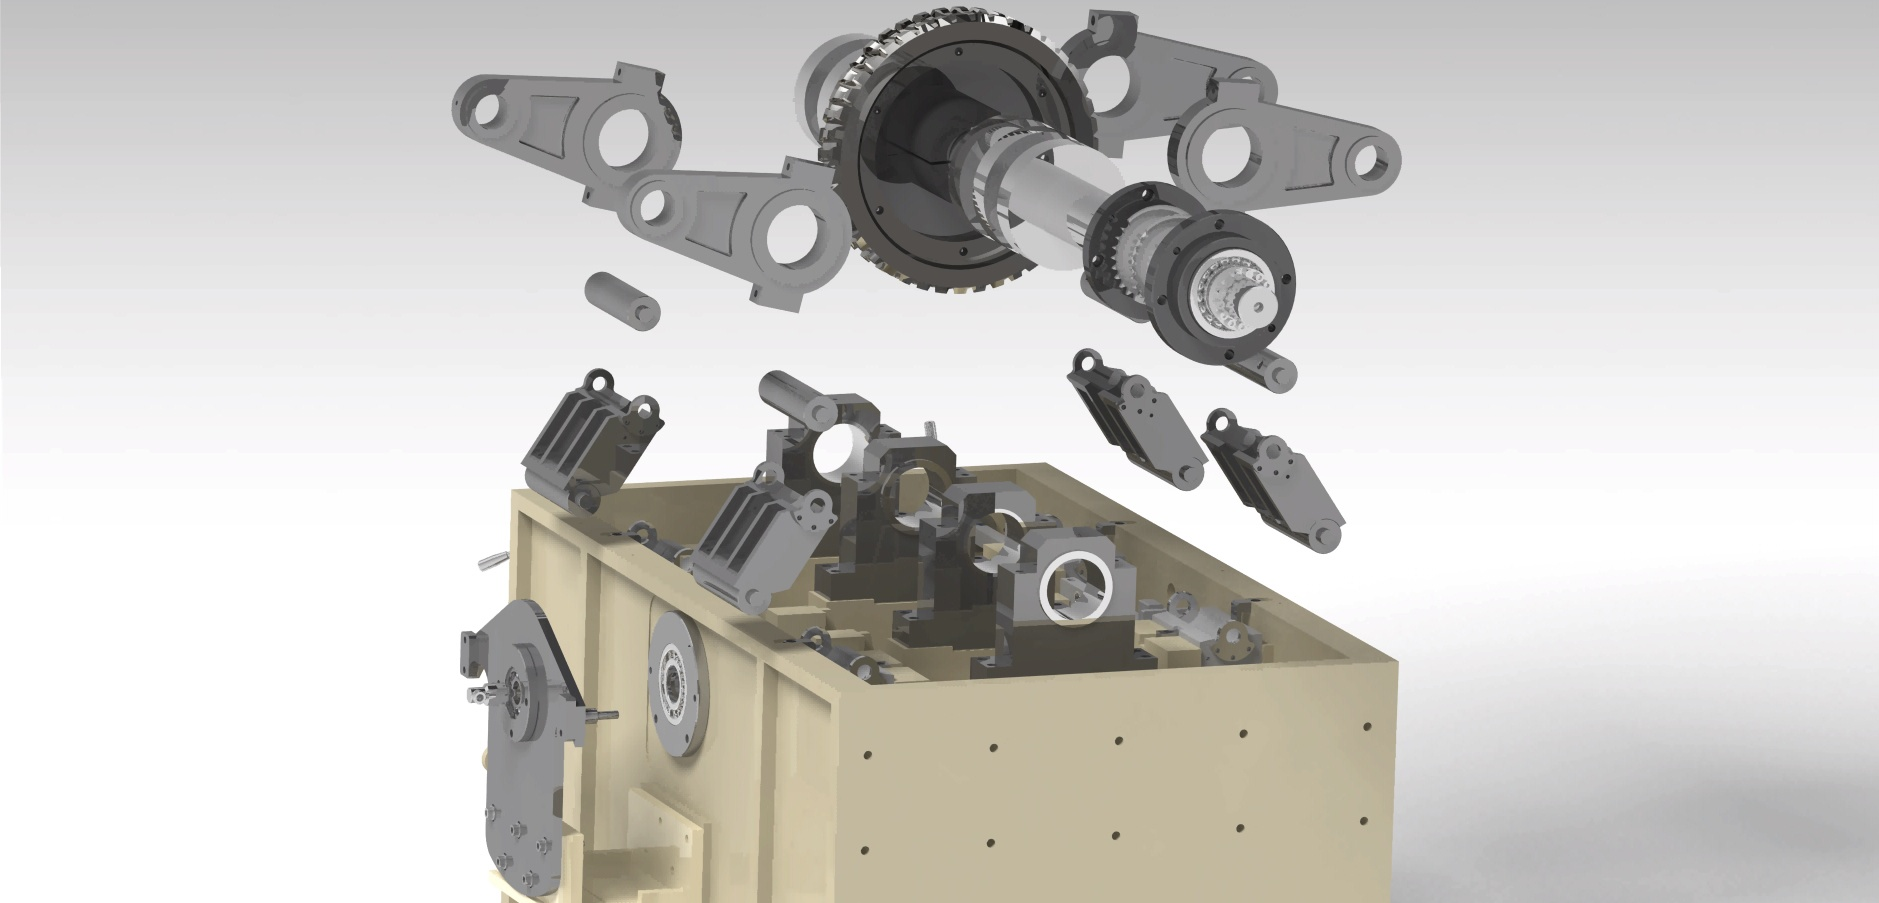 Box cutter machine assembly